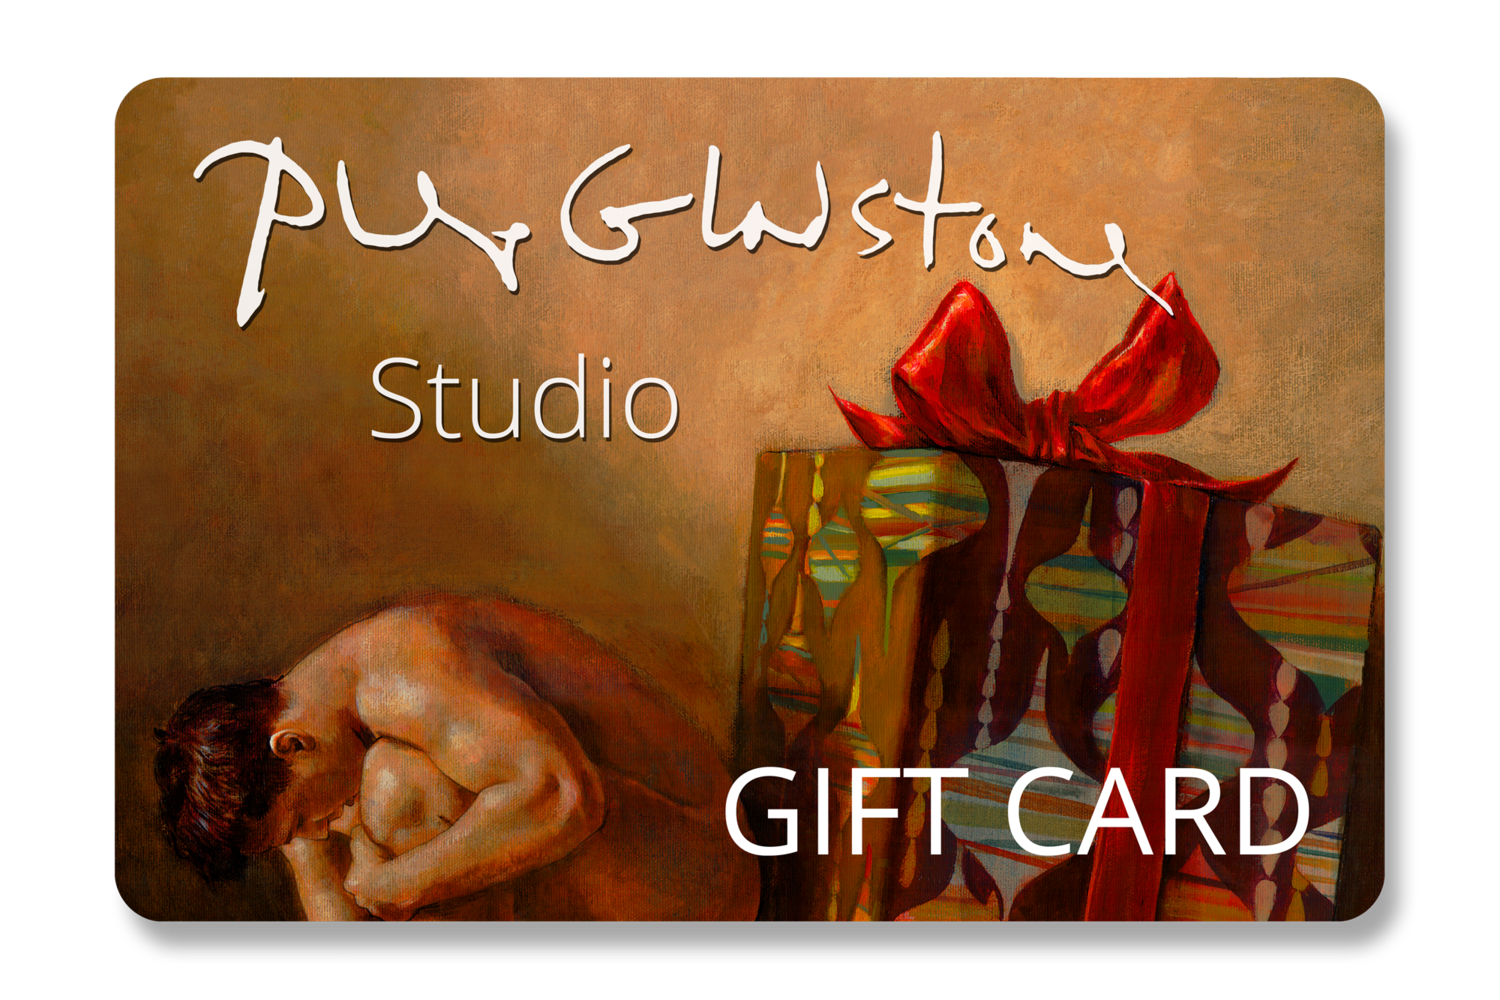 GIFT CARD Philip Gladstone Studio *Custom Amounts Available